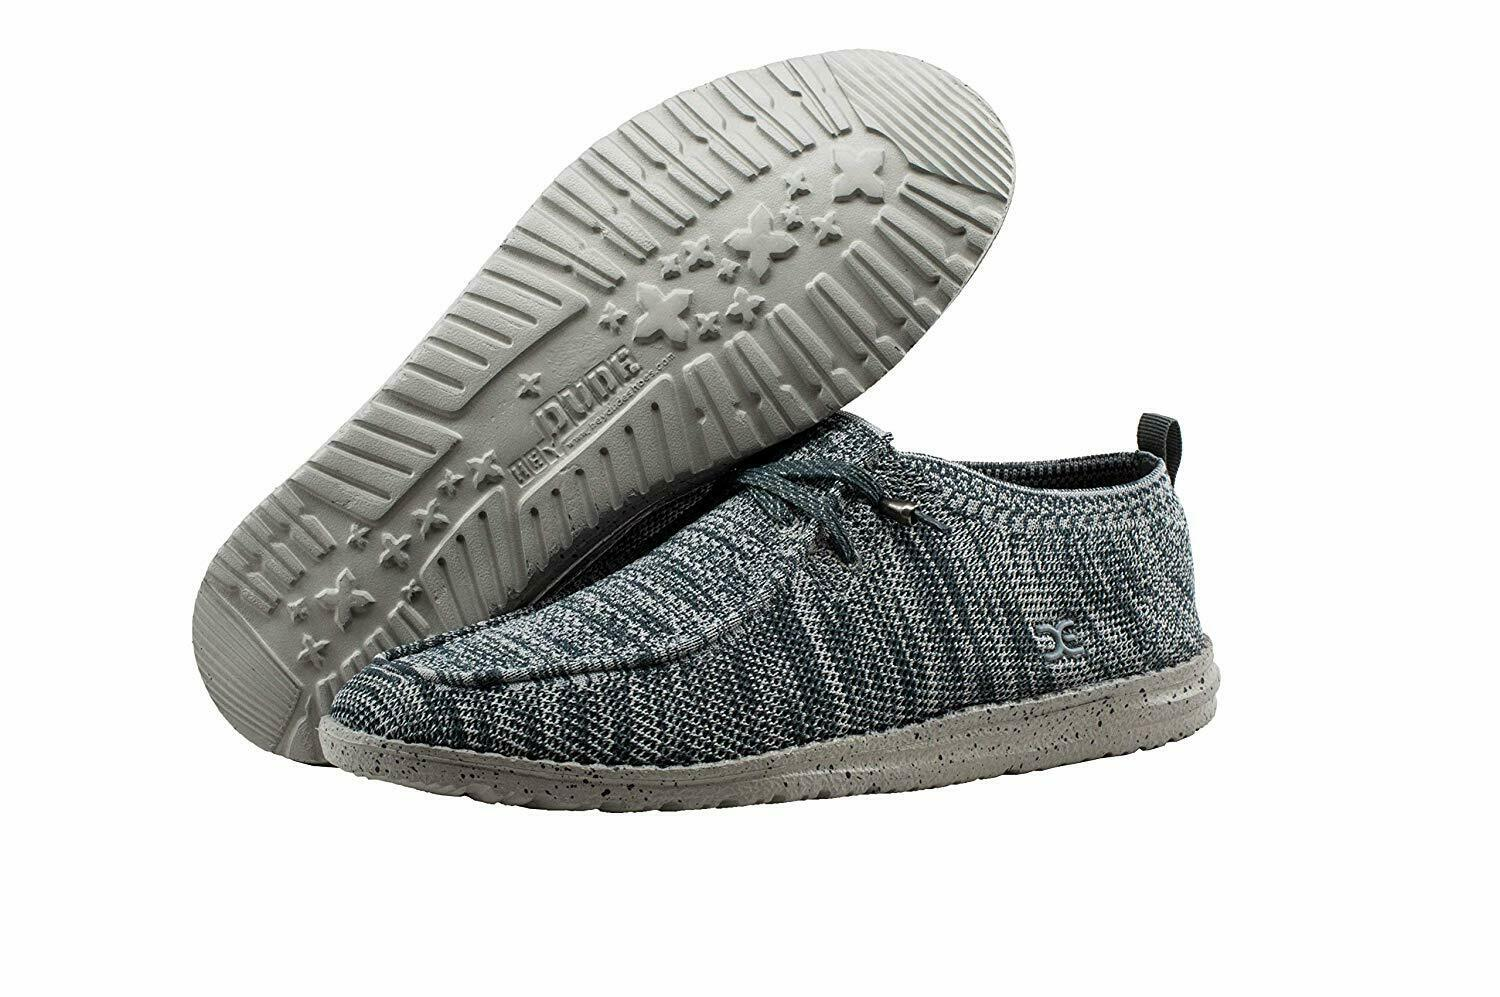 Men Hey Dude Wally Knit Slipper 111273039 Multi Grey 100% Original Brand New